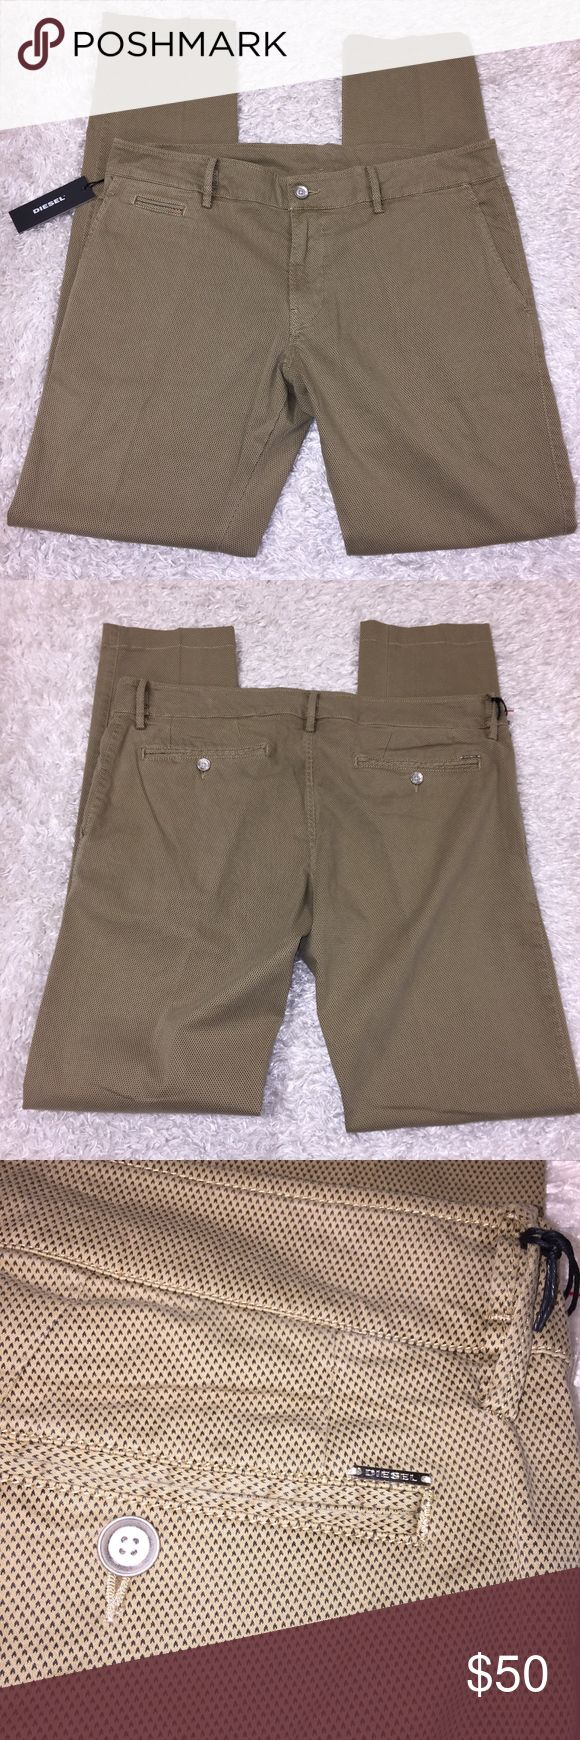 """NWT Diesel Pants New! Size 38. Khaki color, straight leg. Waist: 19 1/2"""". Inseam: 33"""". Feel free to ask any questions, no trades/models sorry. Offers thru offer button only! Items ship sam day M-F if purchased before 2 PM PST. x Diesel Pants"""